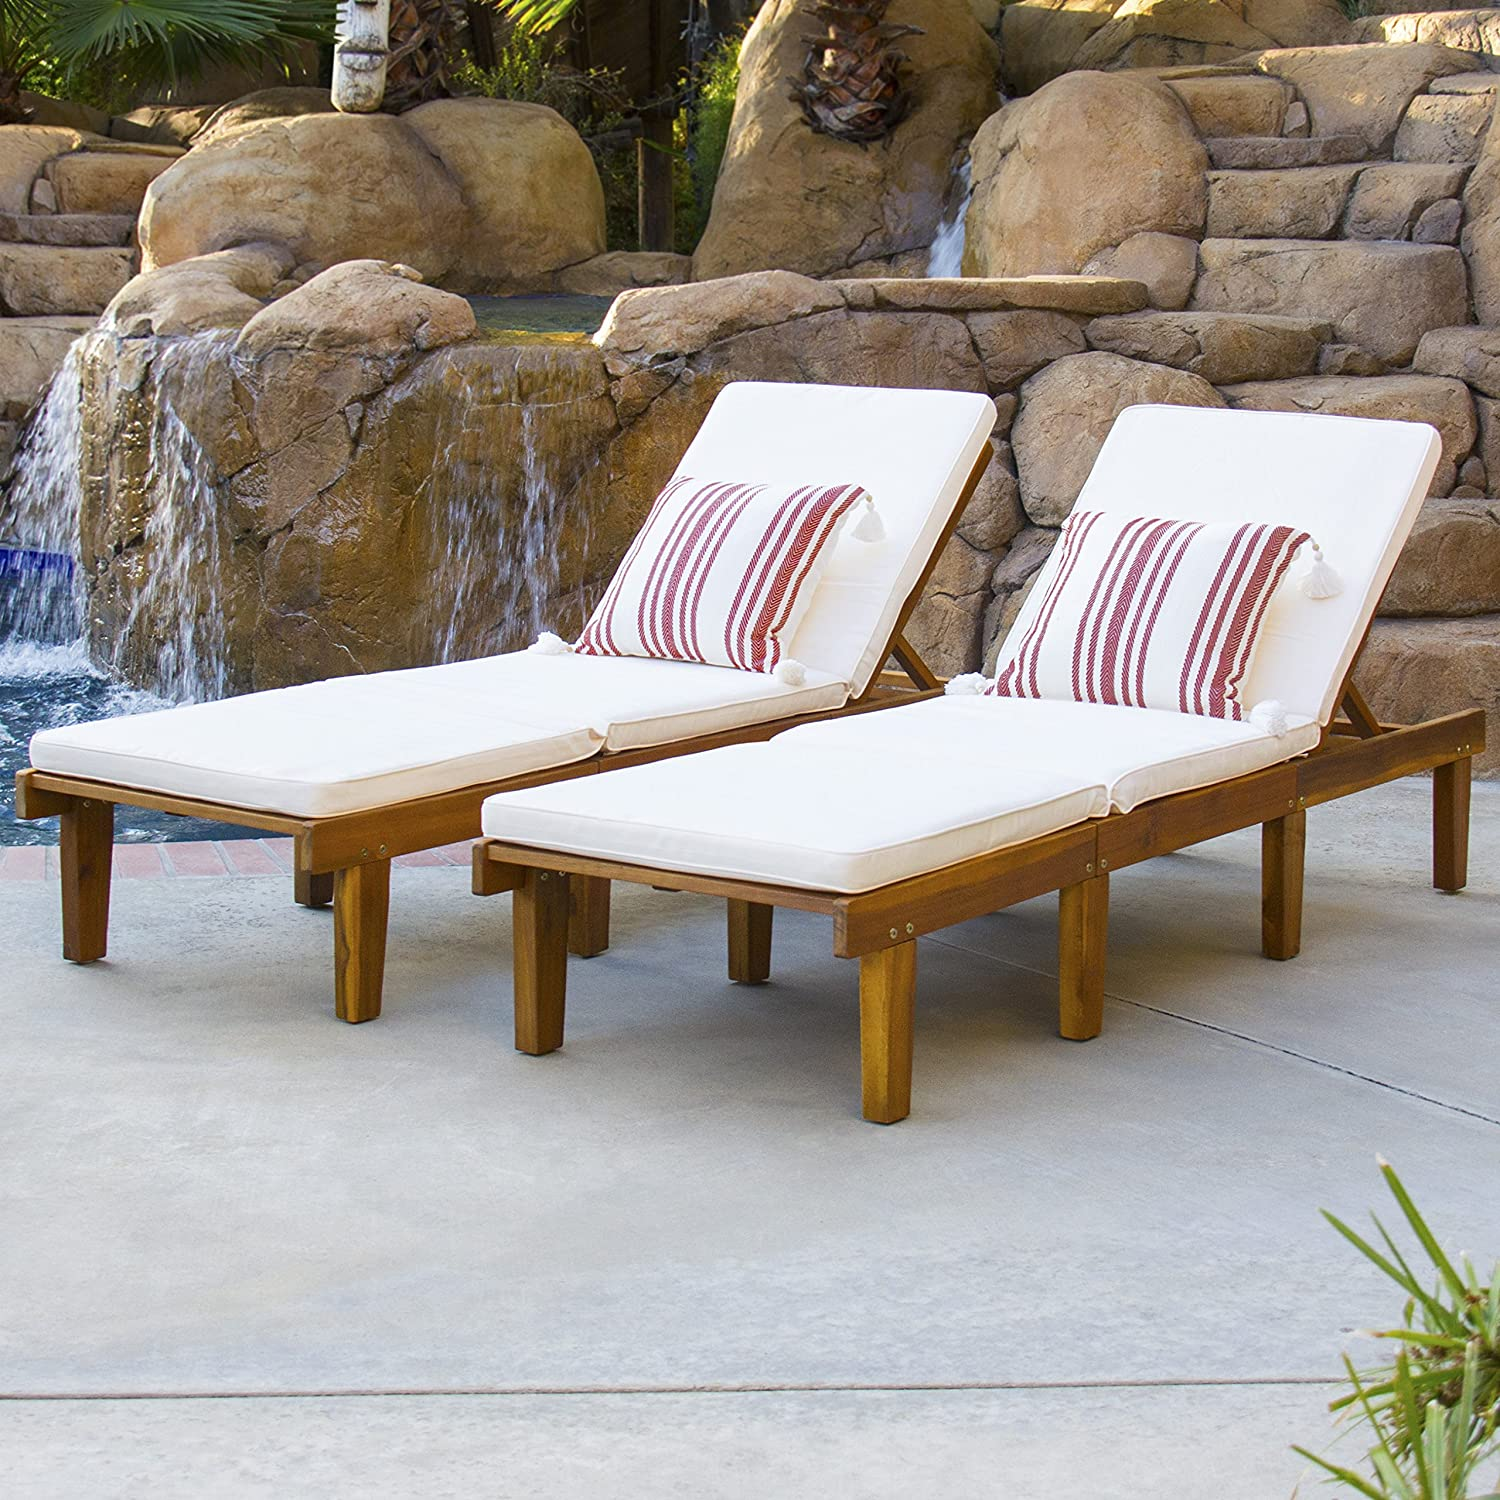 Amazon com best choice products outdoor patio poolside furniture set of 2 acacia wood chaise lounge garden outdoor